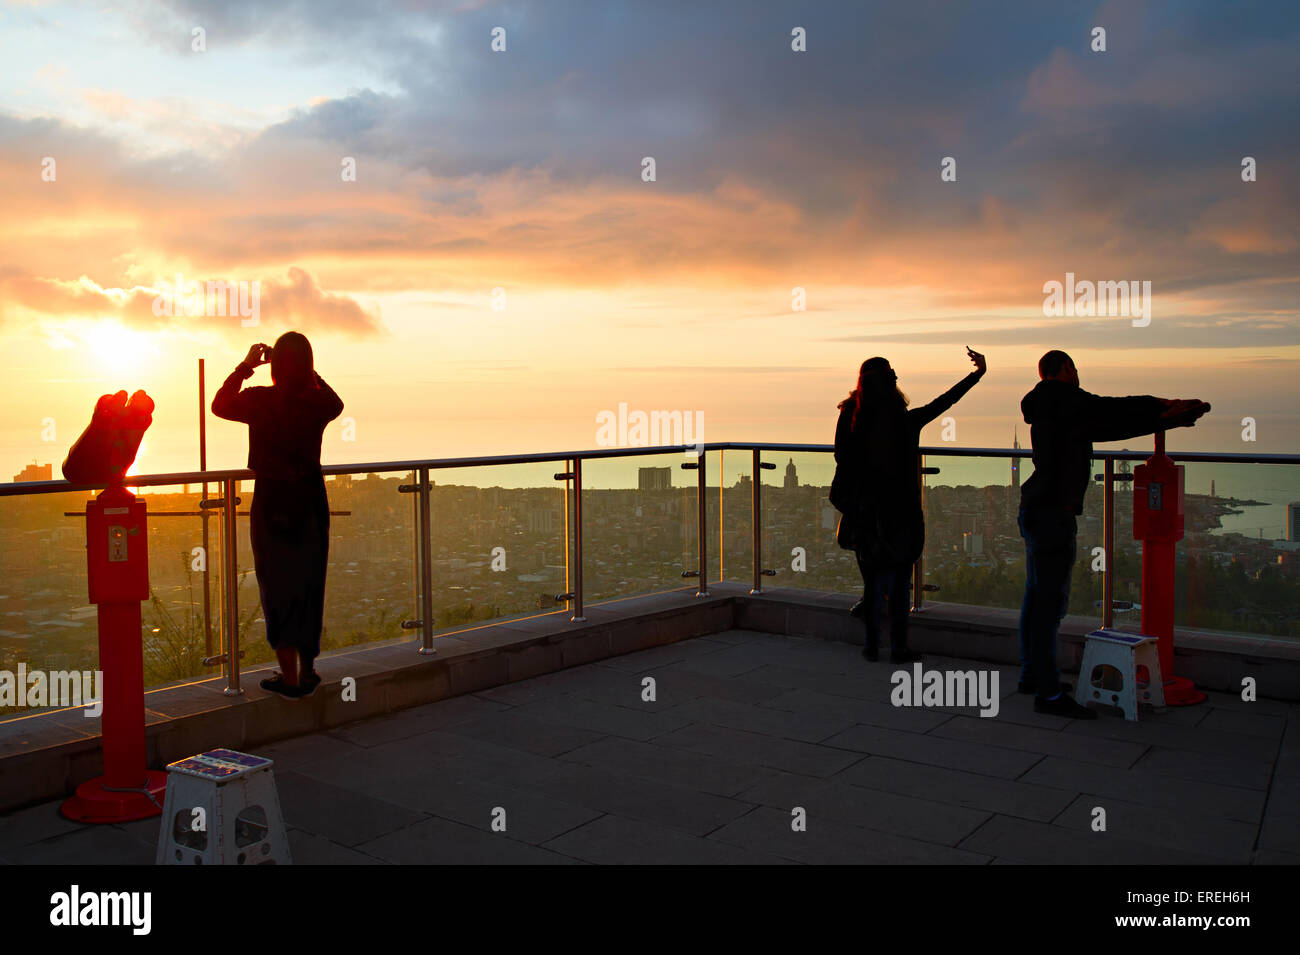 Silhouette of a people at viewpoint in Batumi, Georgia - Stock Image